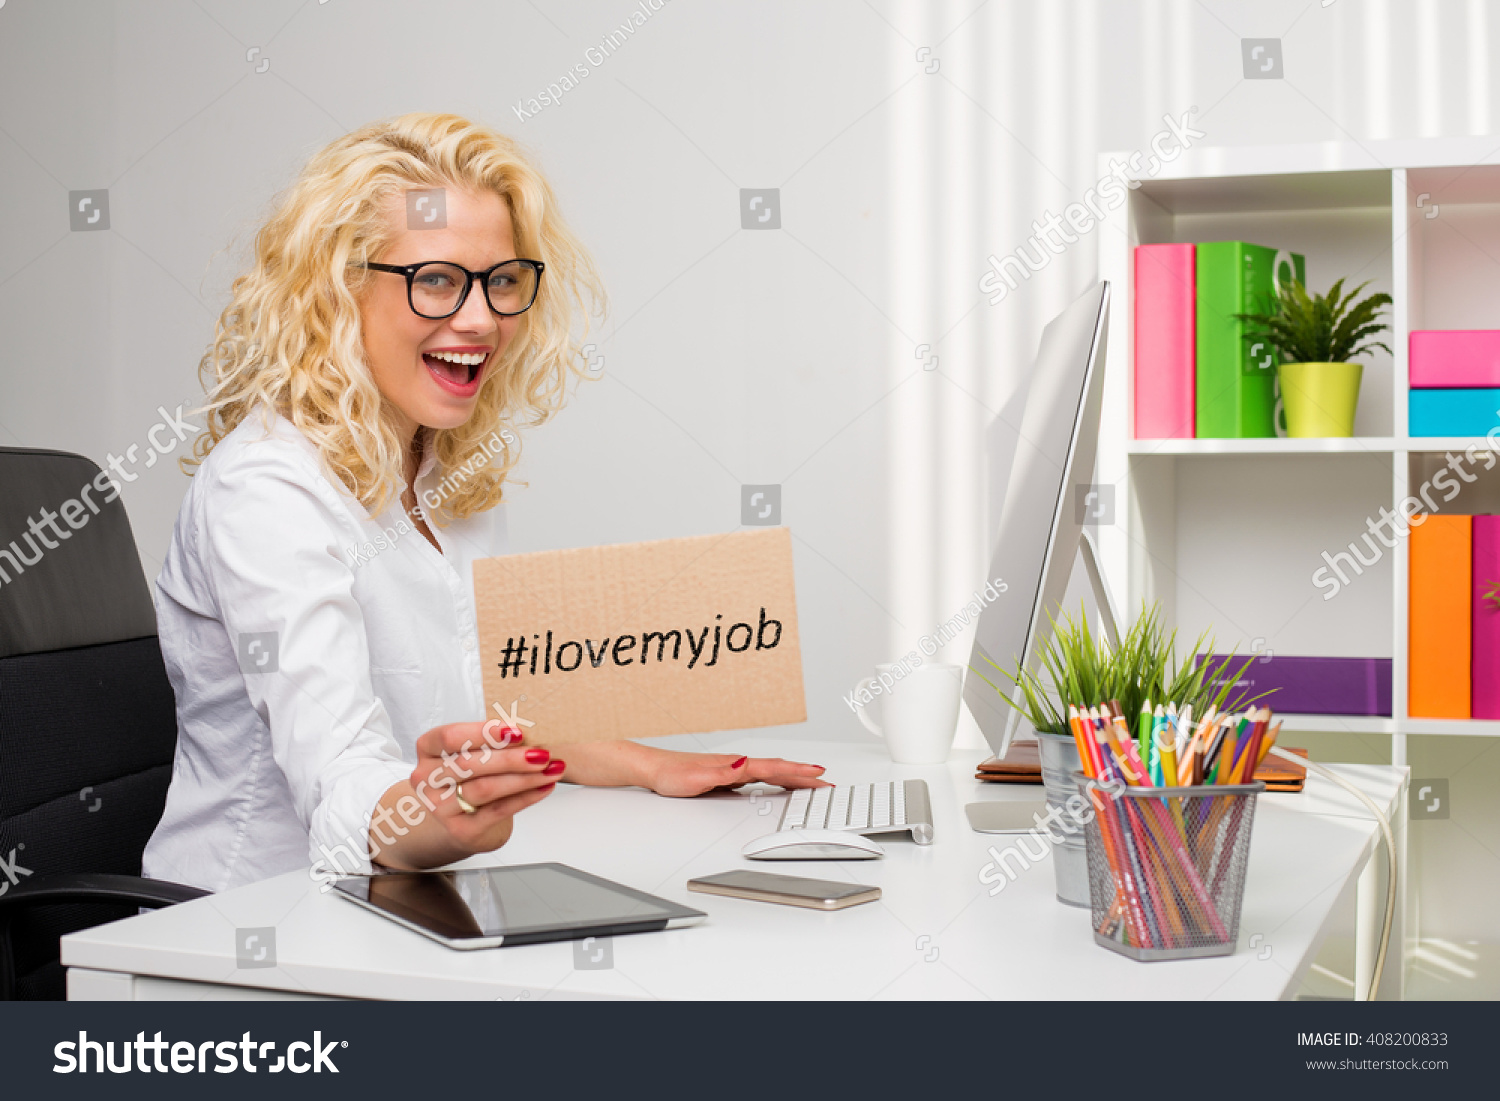 Woman Office Showing I Love My Stock Photo 408200833 Shutterstock